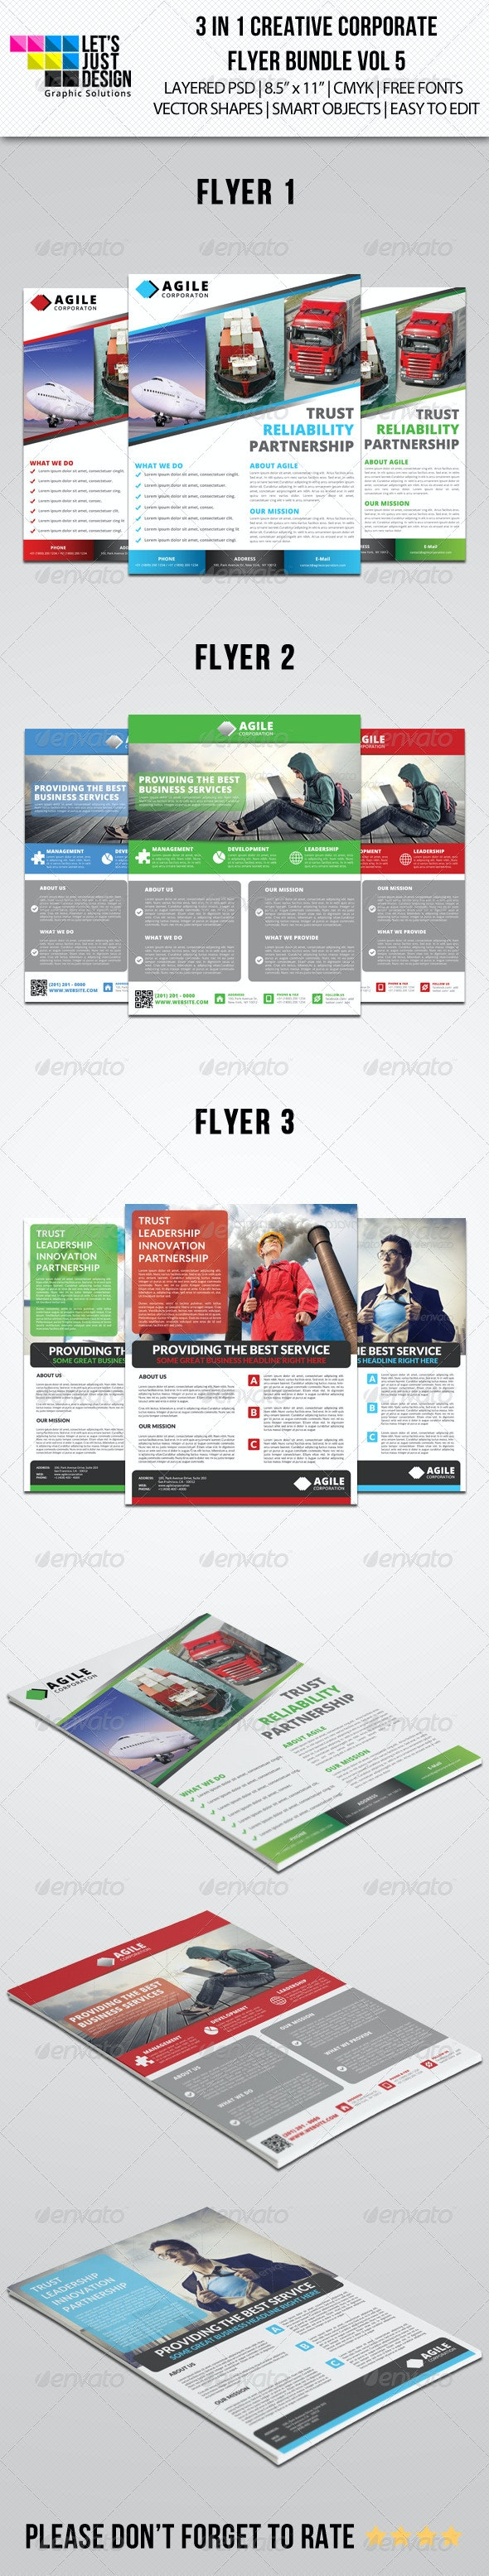 Creative Corporate Flyer Pack Vol 5 - Corporate Flyers